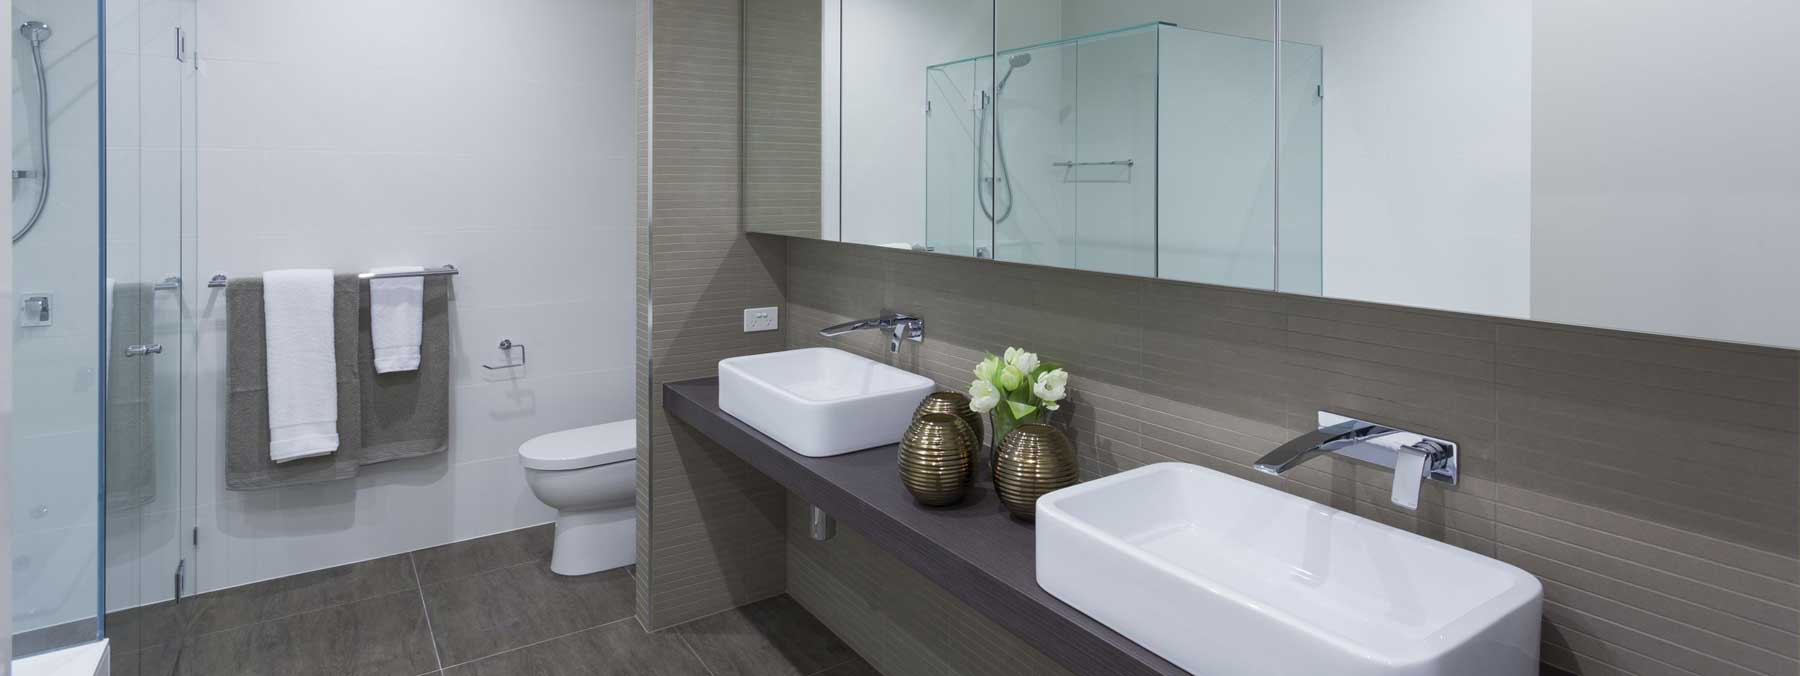 Professional Licensed Bathroom Renovations Experts